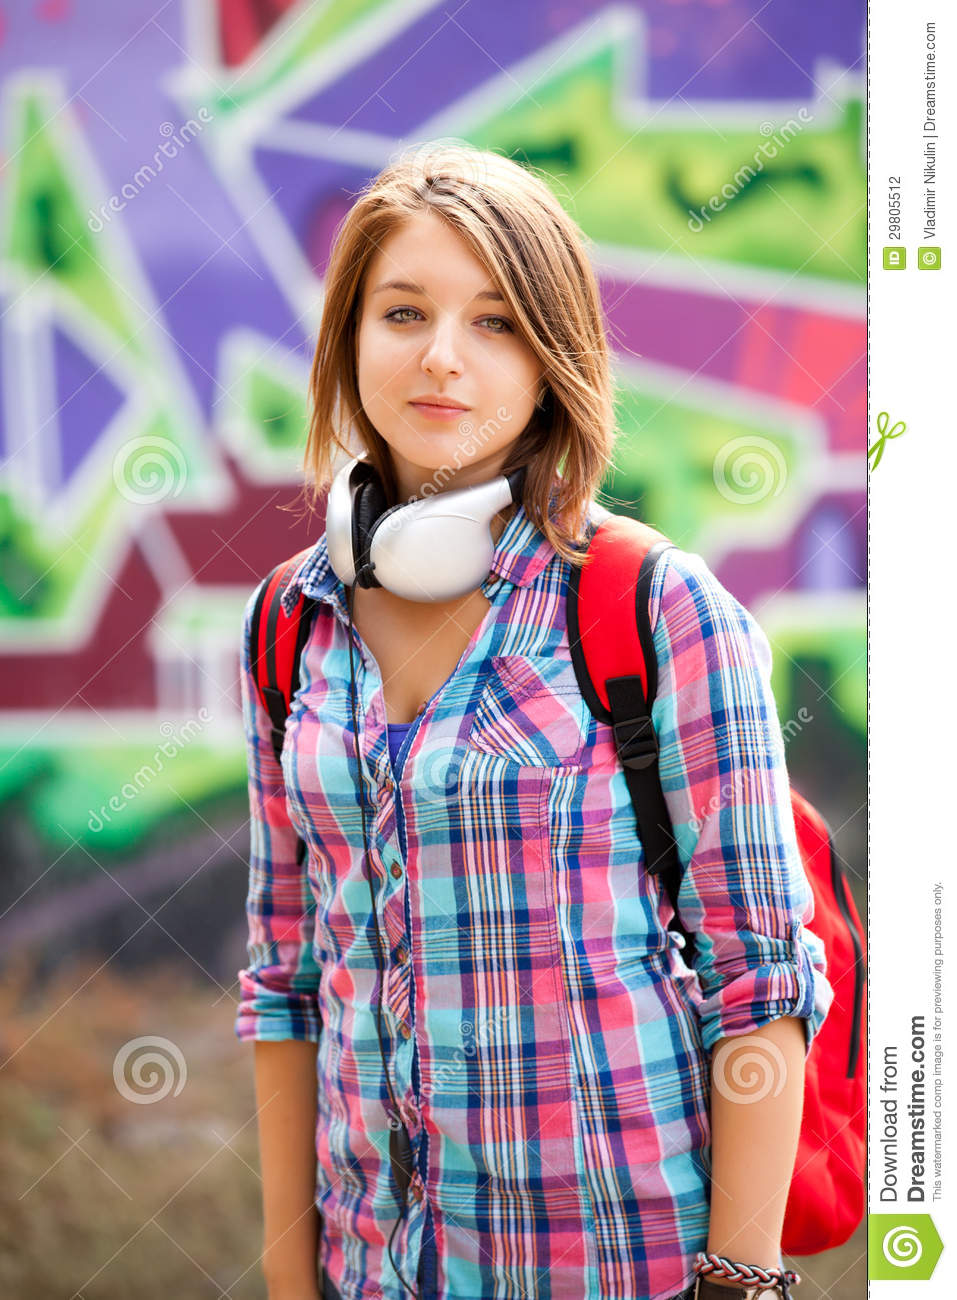 Style Teen Girl With Backpack Standing Near Graffiti Wall